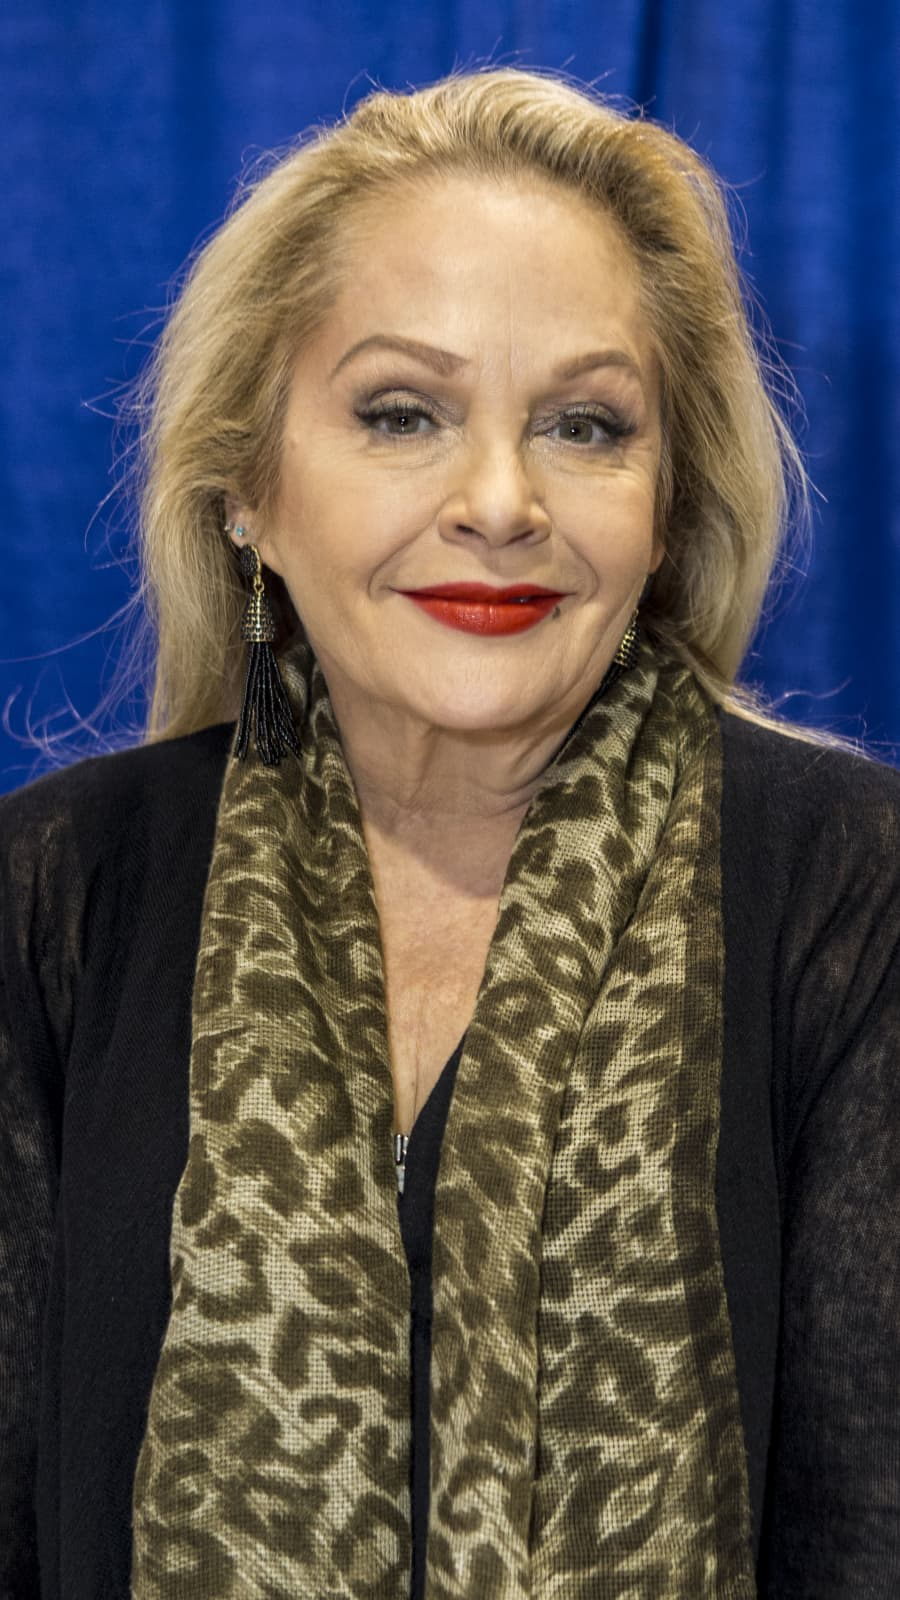 Charlene Tilton Phone number, Email Id, Fanmail, Instagram, Tiktok, and Contact Details